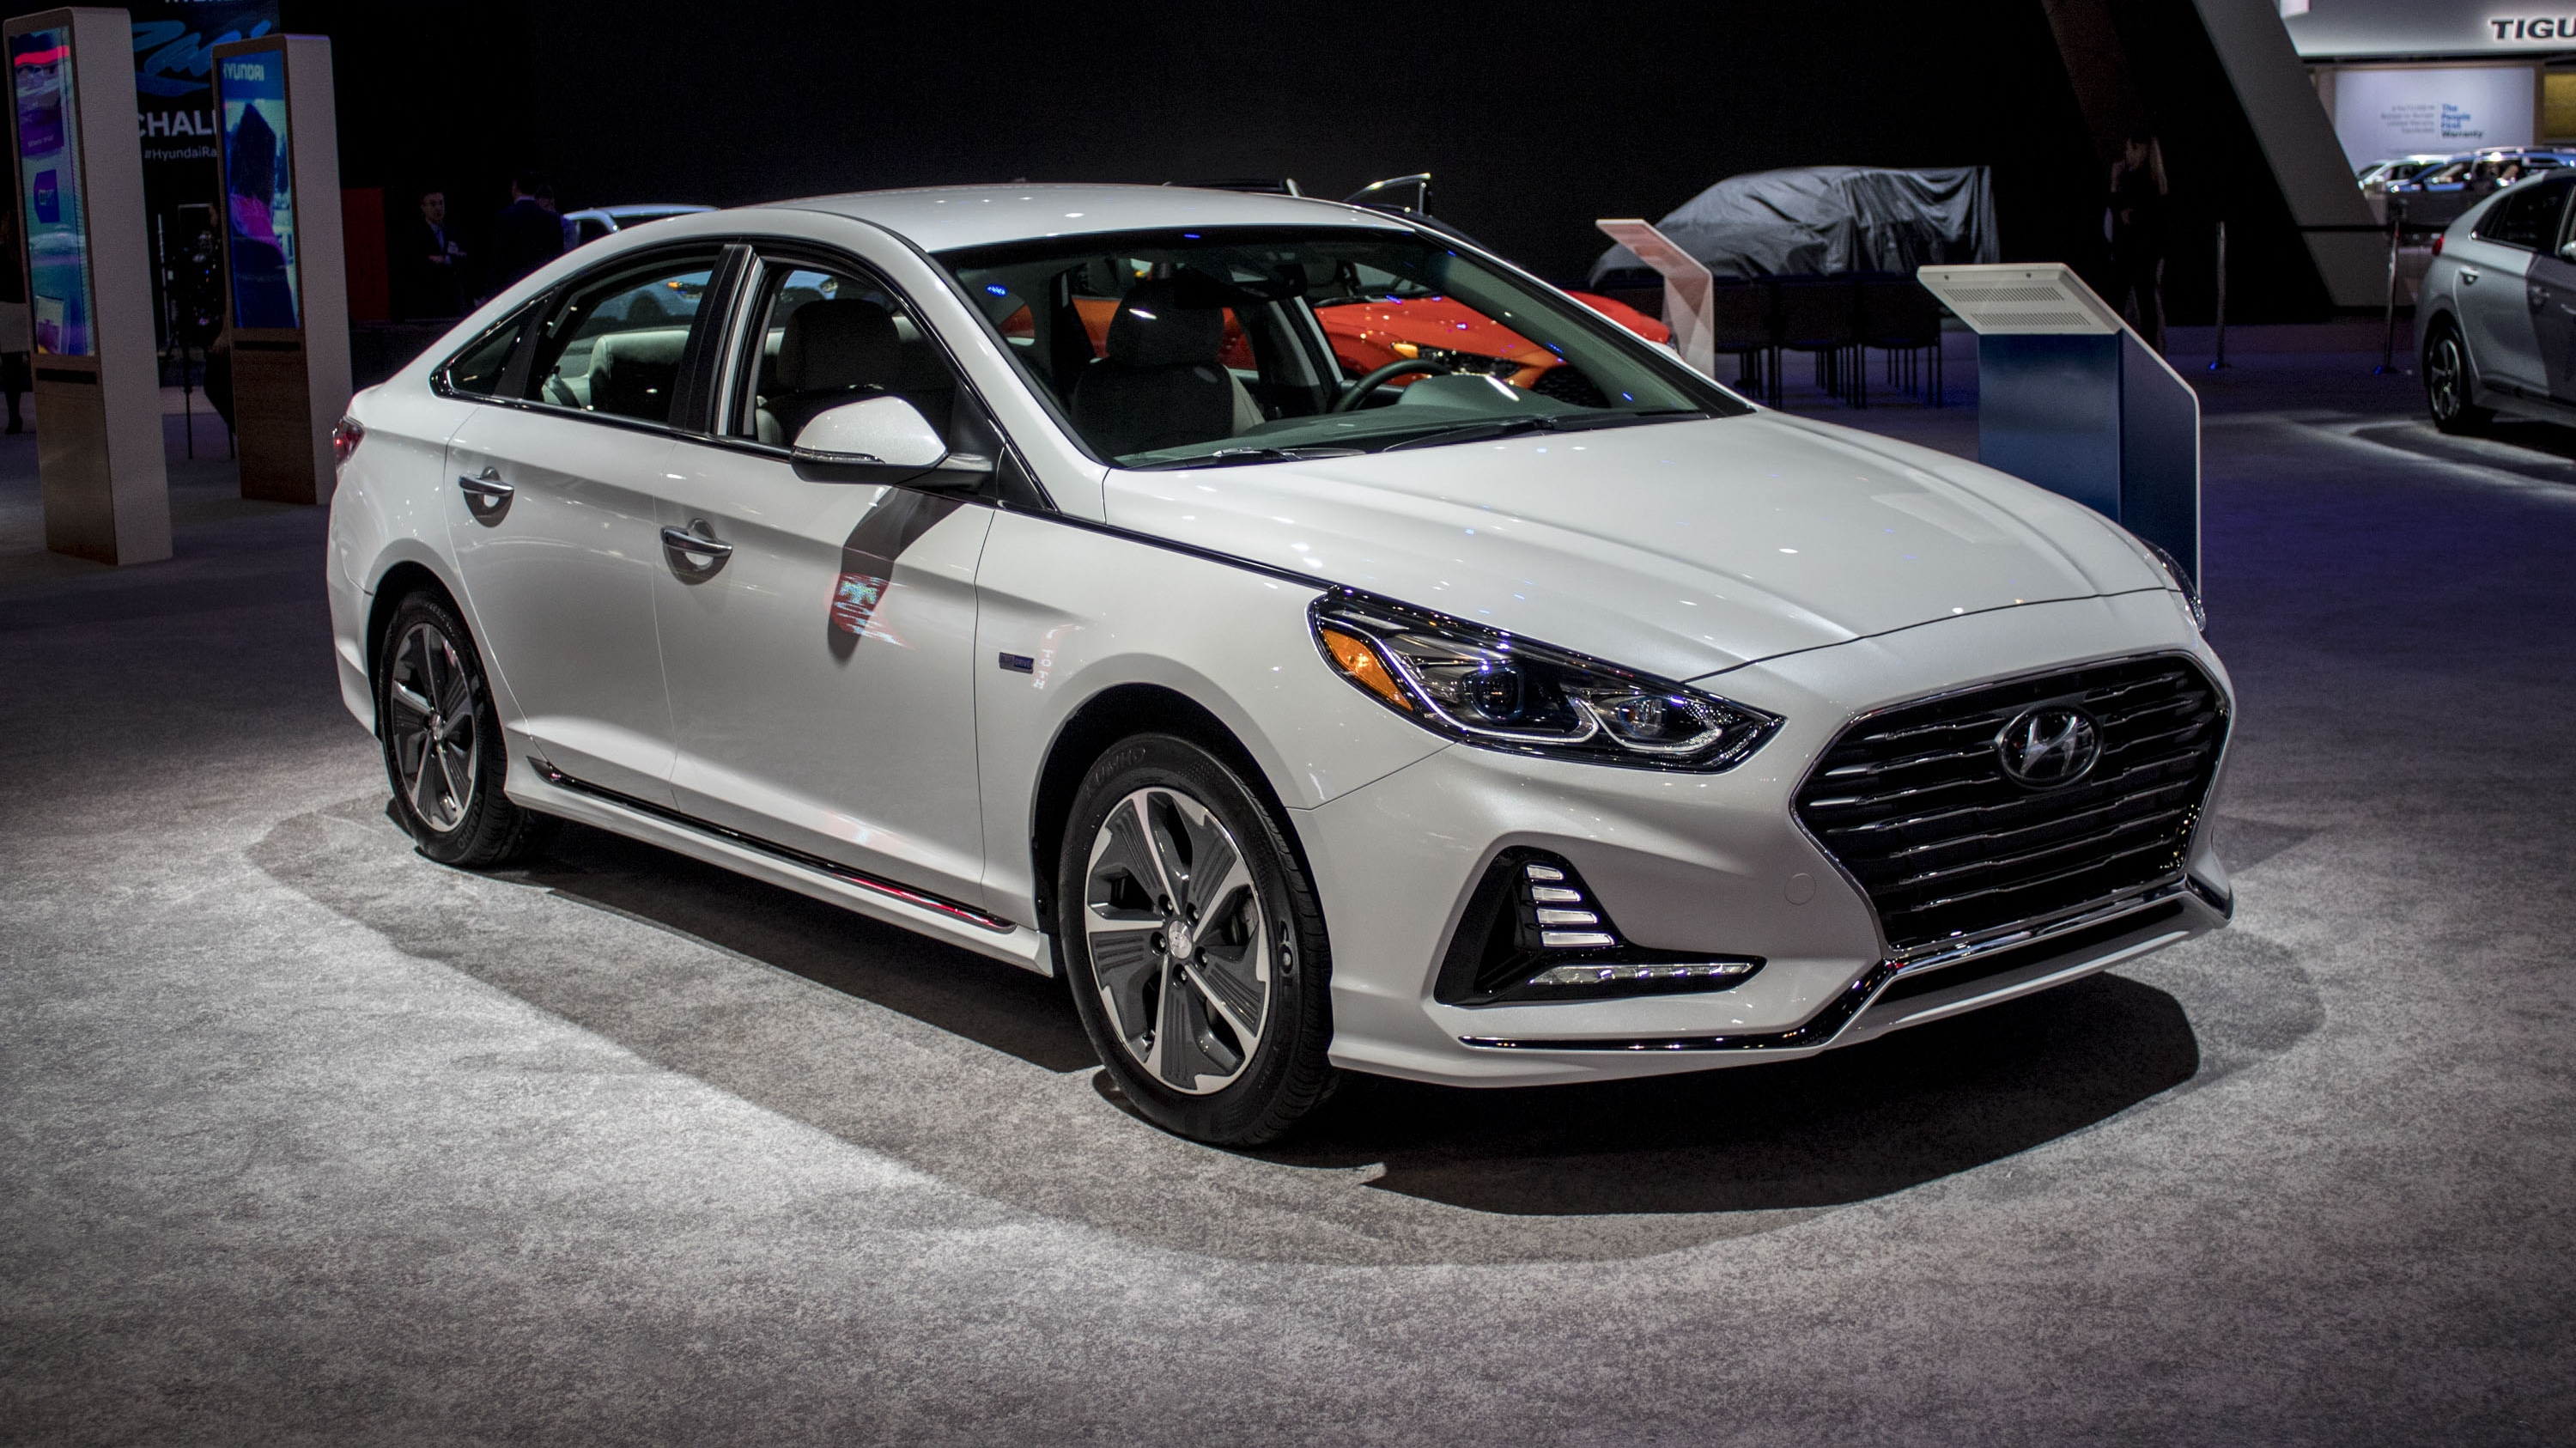 2018 hyundai sonata hybrid review gallery top speed. Black Bedroom Furniture Sets. Home Design Ideas